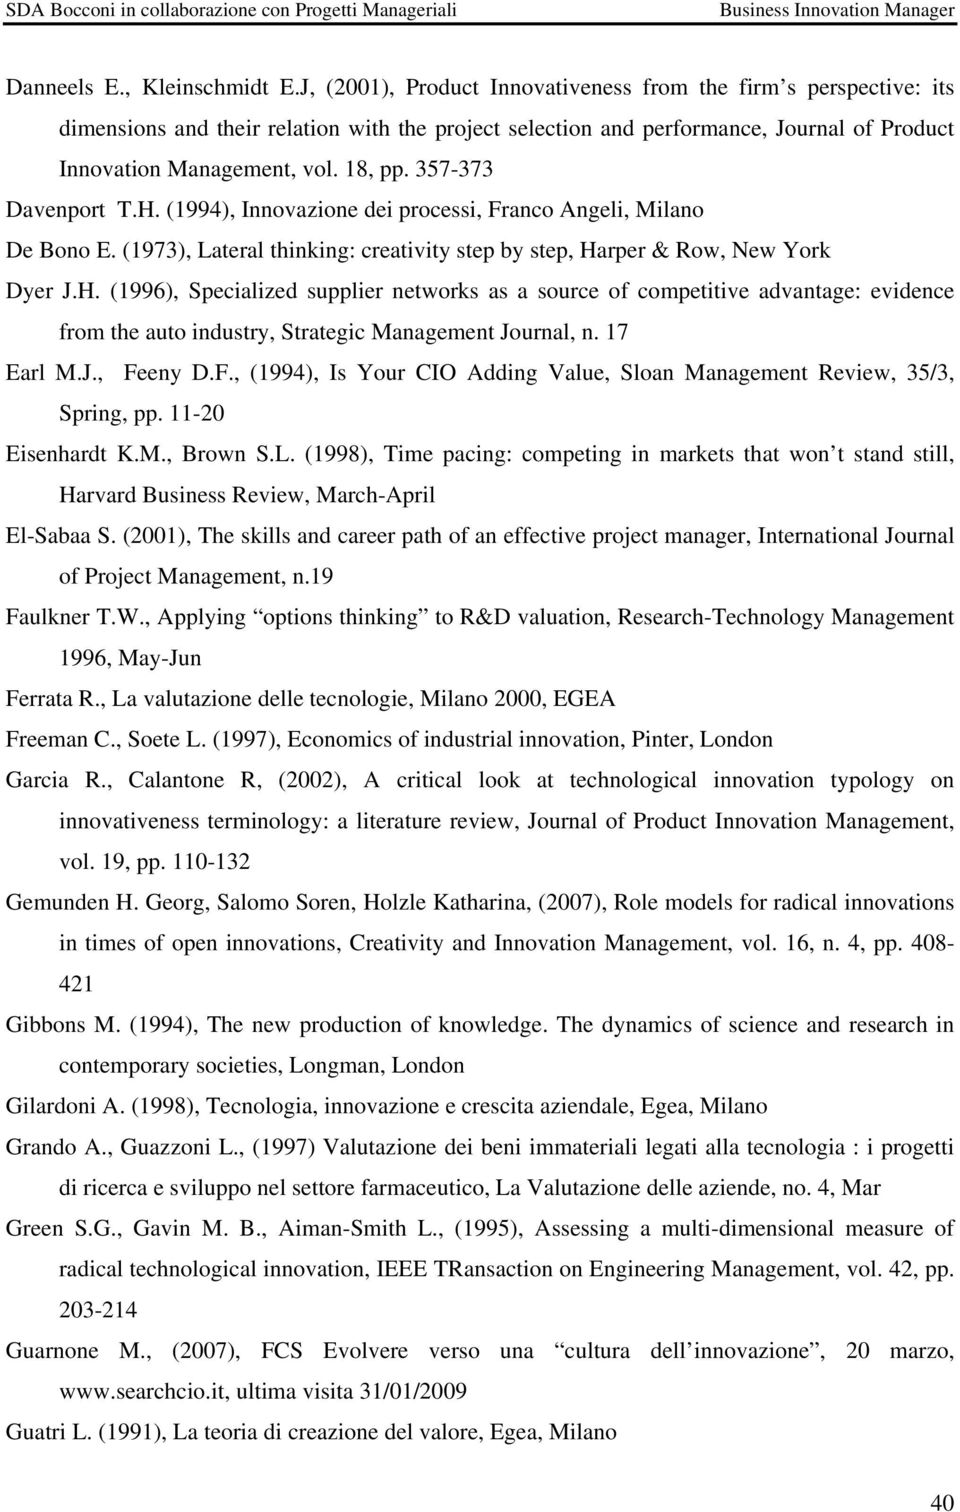 357-373 Davenport T.H. (1994), Innovazione dei processi, Franco Angeli, Milano De Bono E. (1973), Lateral thinking: creativity step by step, Harper & Row, New York Dyer J.H. (1996), Specialized supplier networks as a source of competitive advantage: evidence from the auto industry, Strategic Management Journal, n.